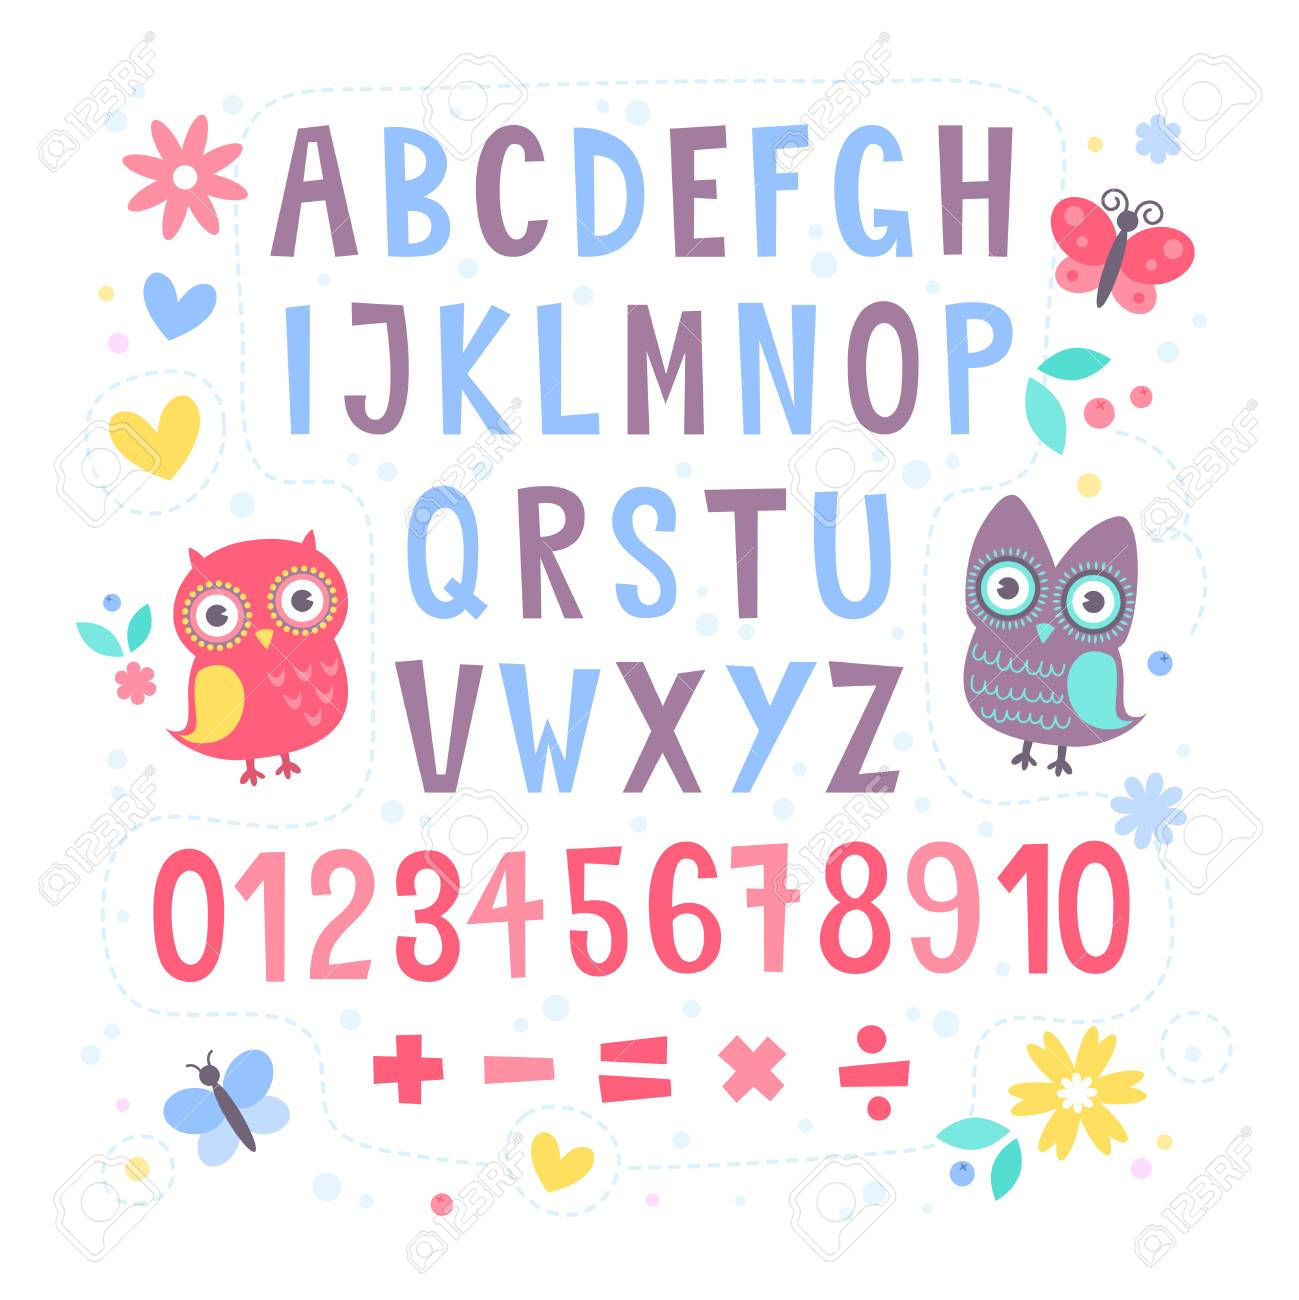 Cute Cartoon Colorful Alphabet For Children With Hand Drawn Typography Letters And Figures Isolated